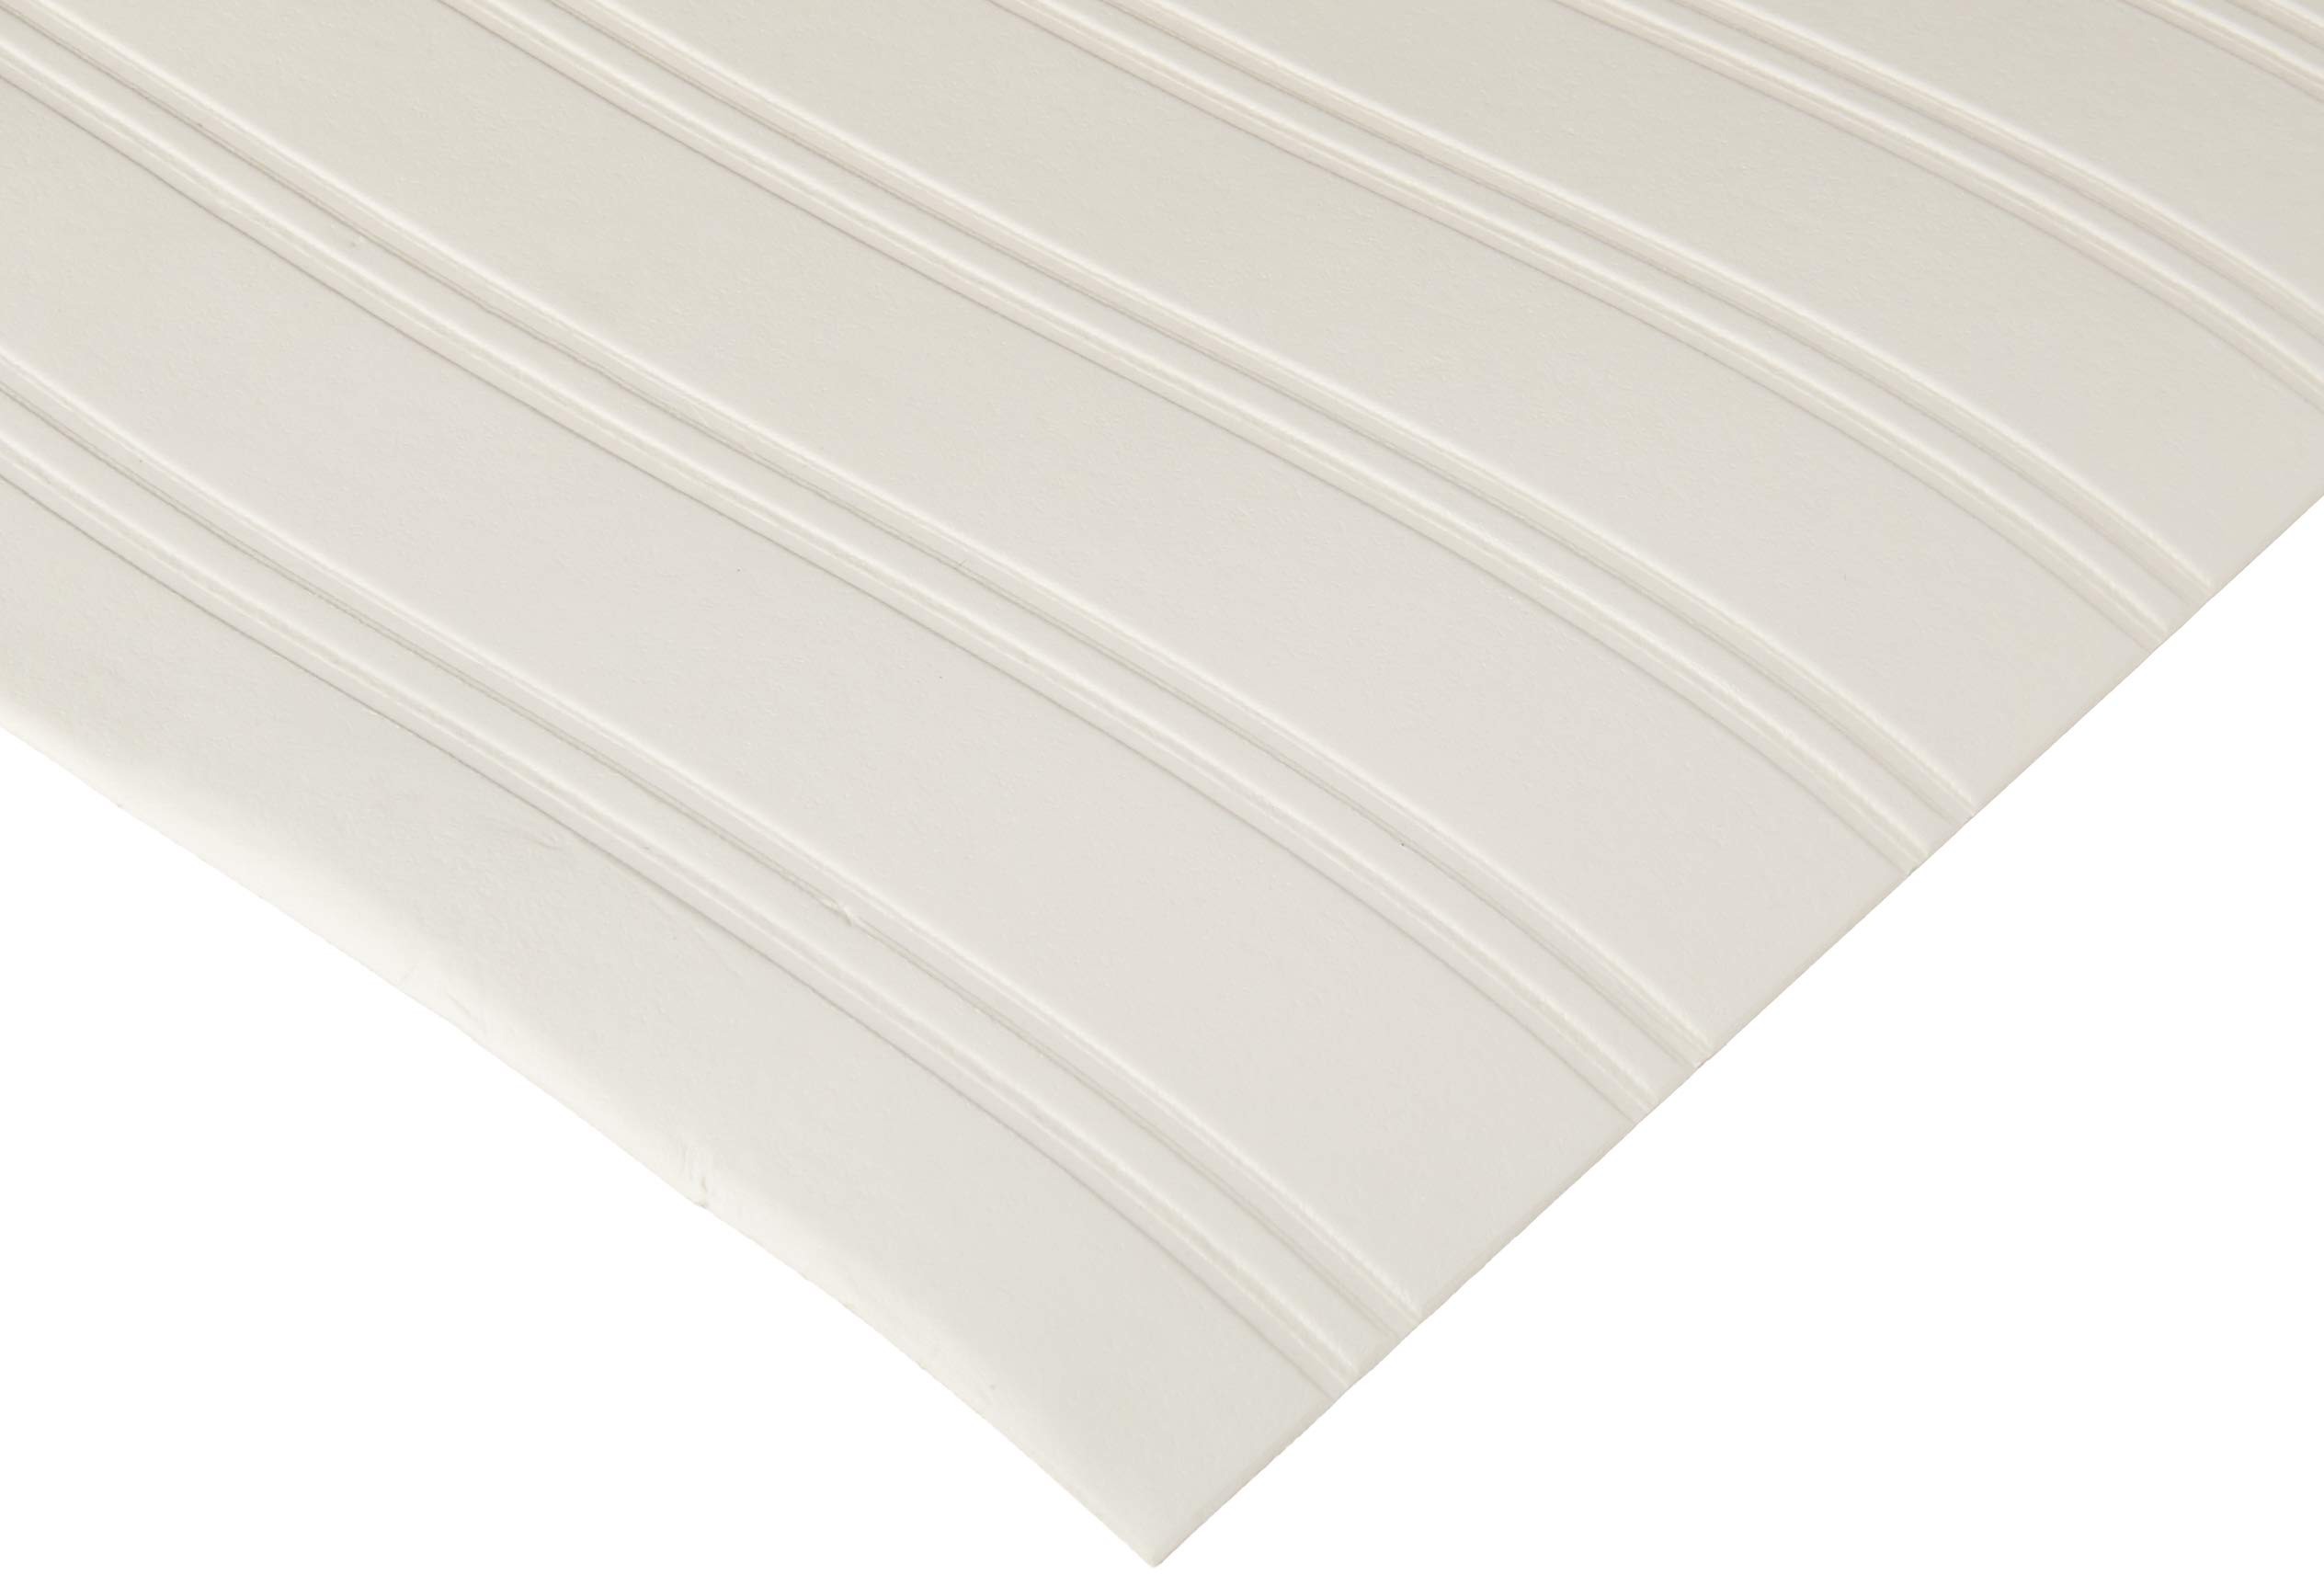 Graham & Brown Paintable Prepasted Beadboard Stripes Texture Wallpaper, White by Graham & Brown